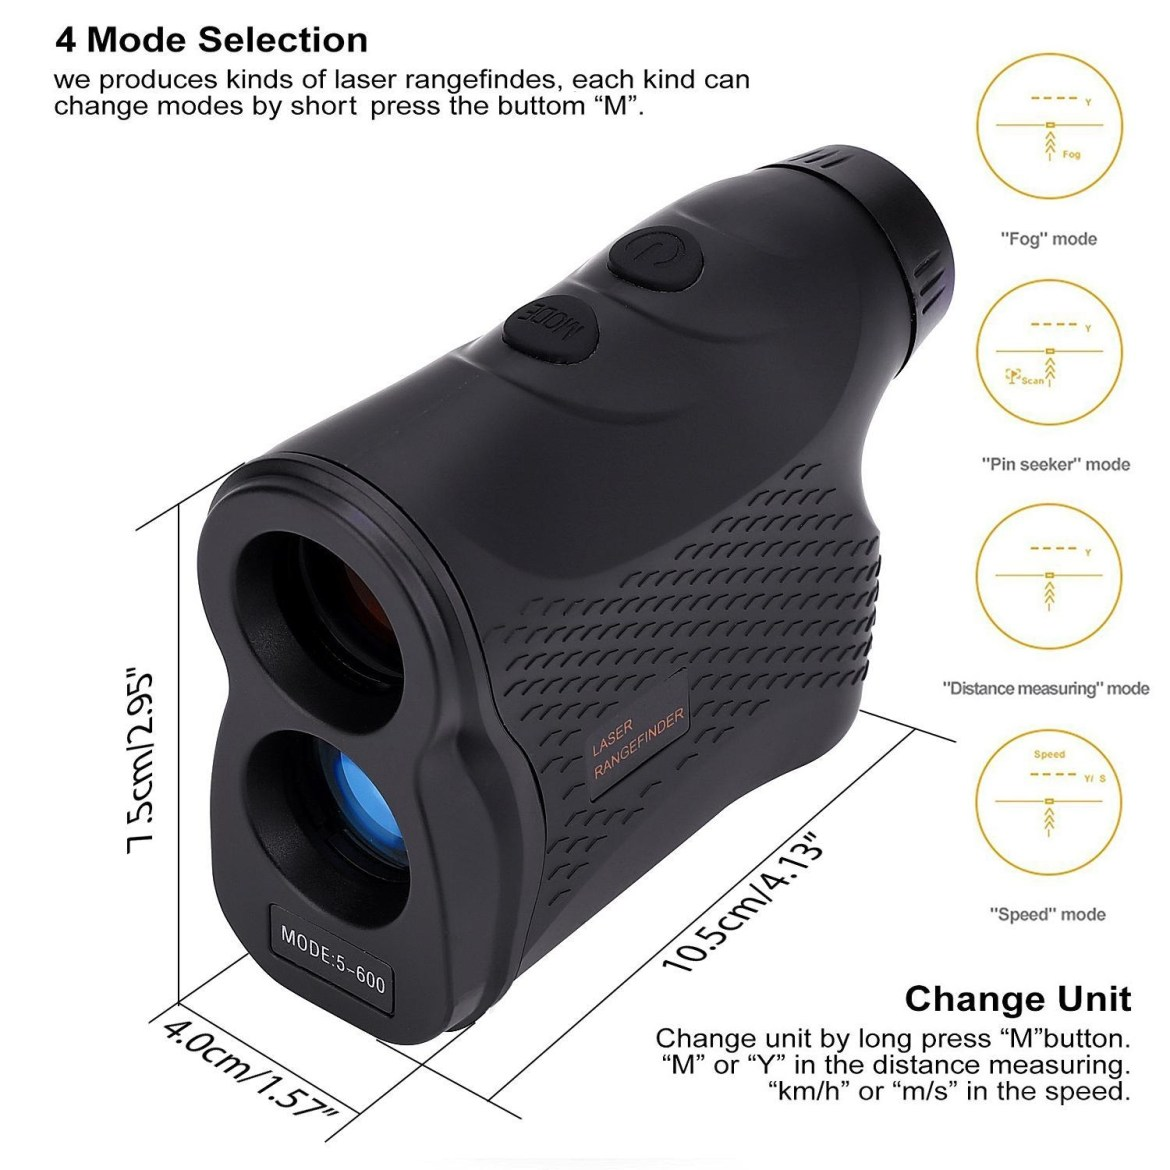 545a2fb1118796825696078fd4b62870 Louis Will DEKO Laser Rangefinder For Hunting And Golf   Laser Range Finder With Fog ,Scan, Speed Measurement, Free Battery